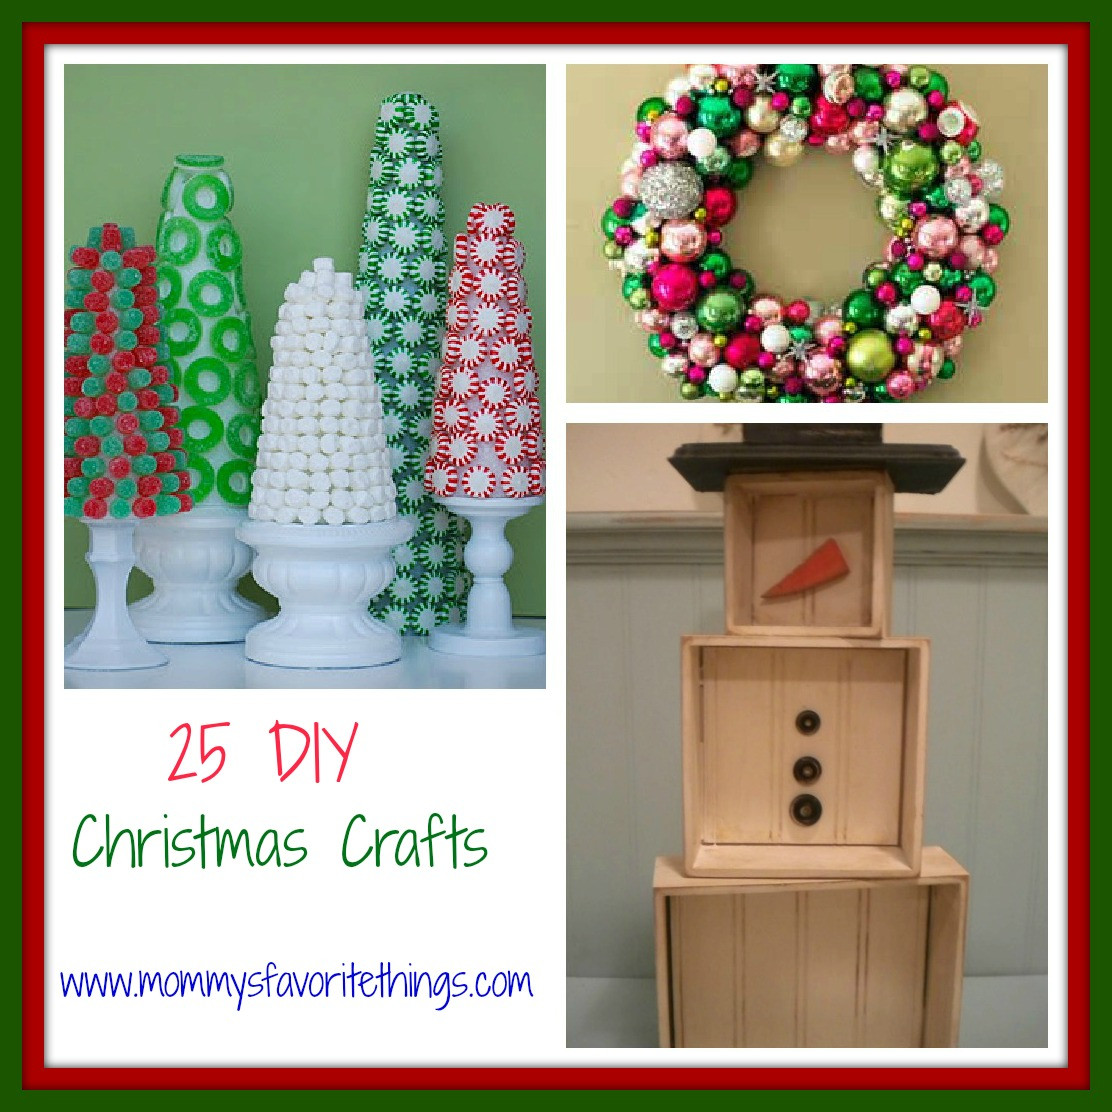 Christmas DIY Crafts  Mommy s Favorite Things 25 DIY Christmas Crafts